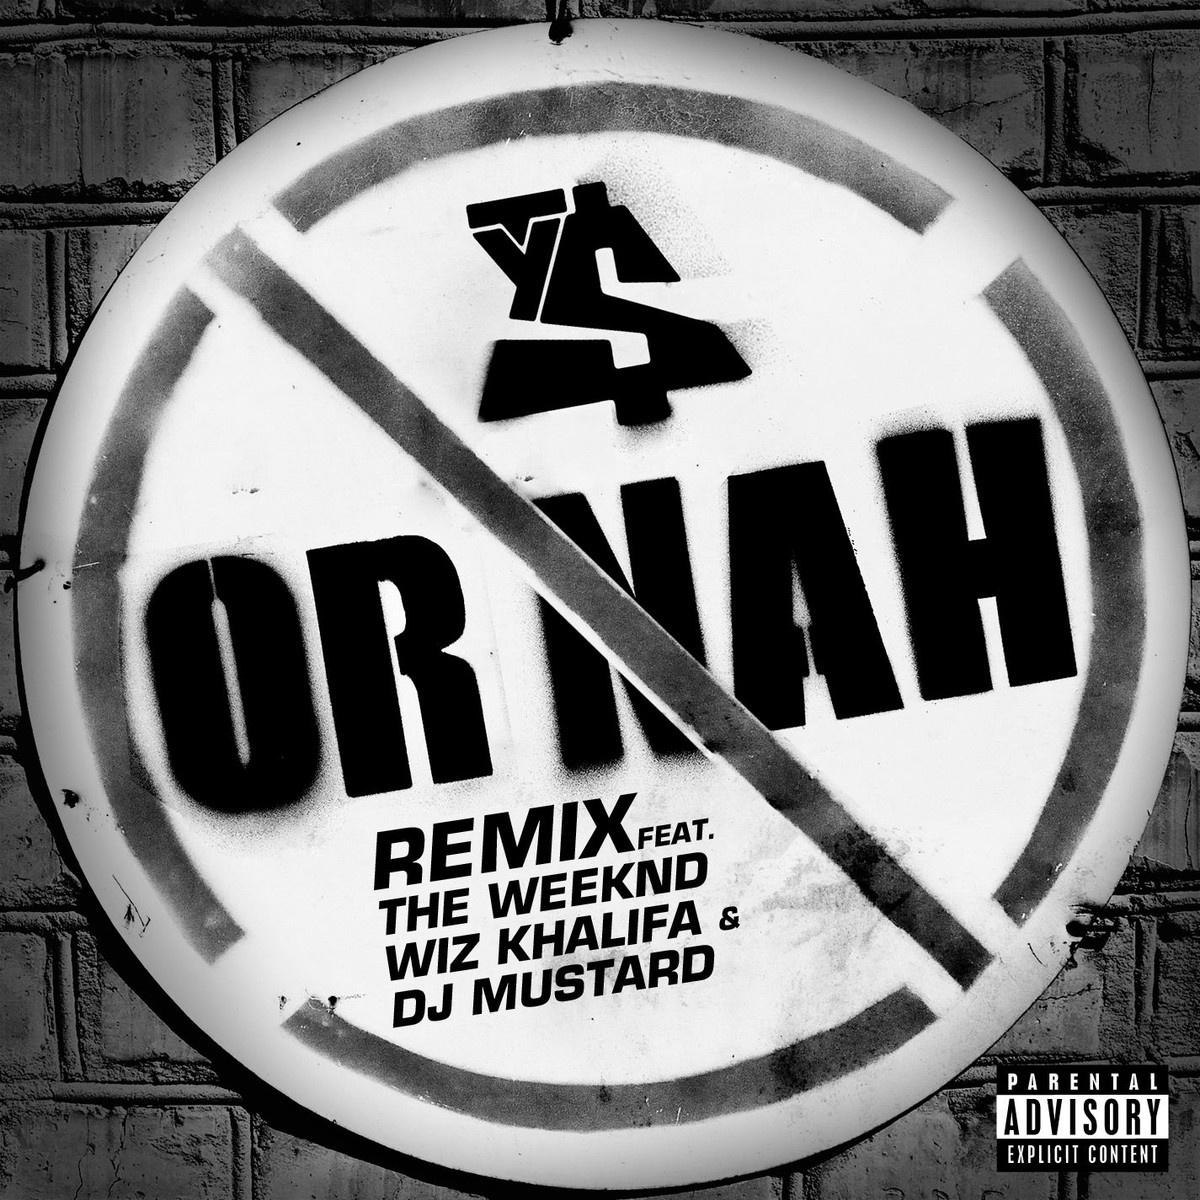 Ty Dolla $ign - Or Nah (Remix) [Ft. Wiz Khalifa, The Weeknd & DJ Mustard] Ty和盆栽谁的嗓音更迷幻呢?